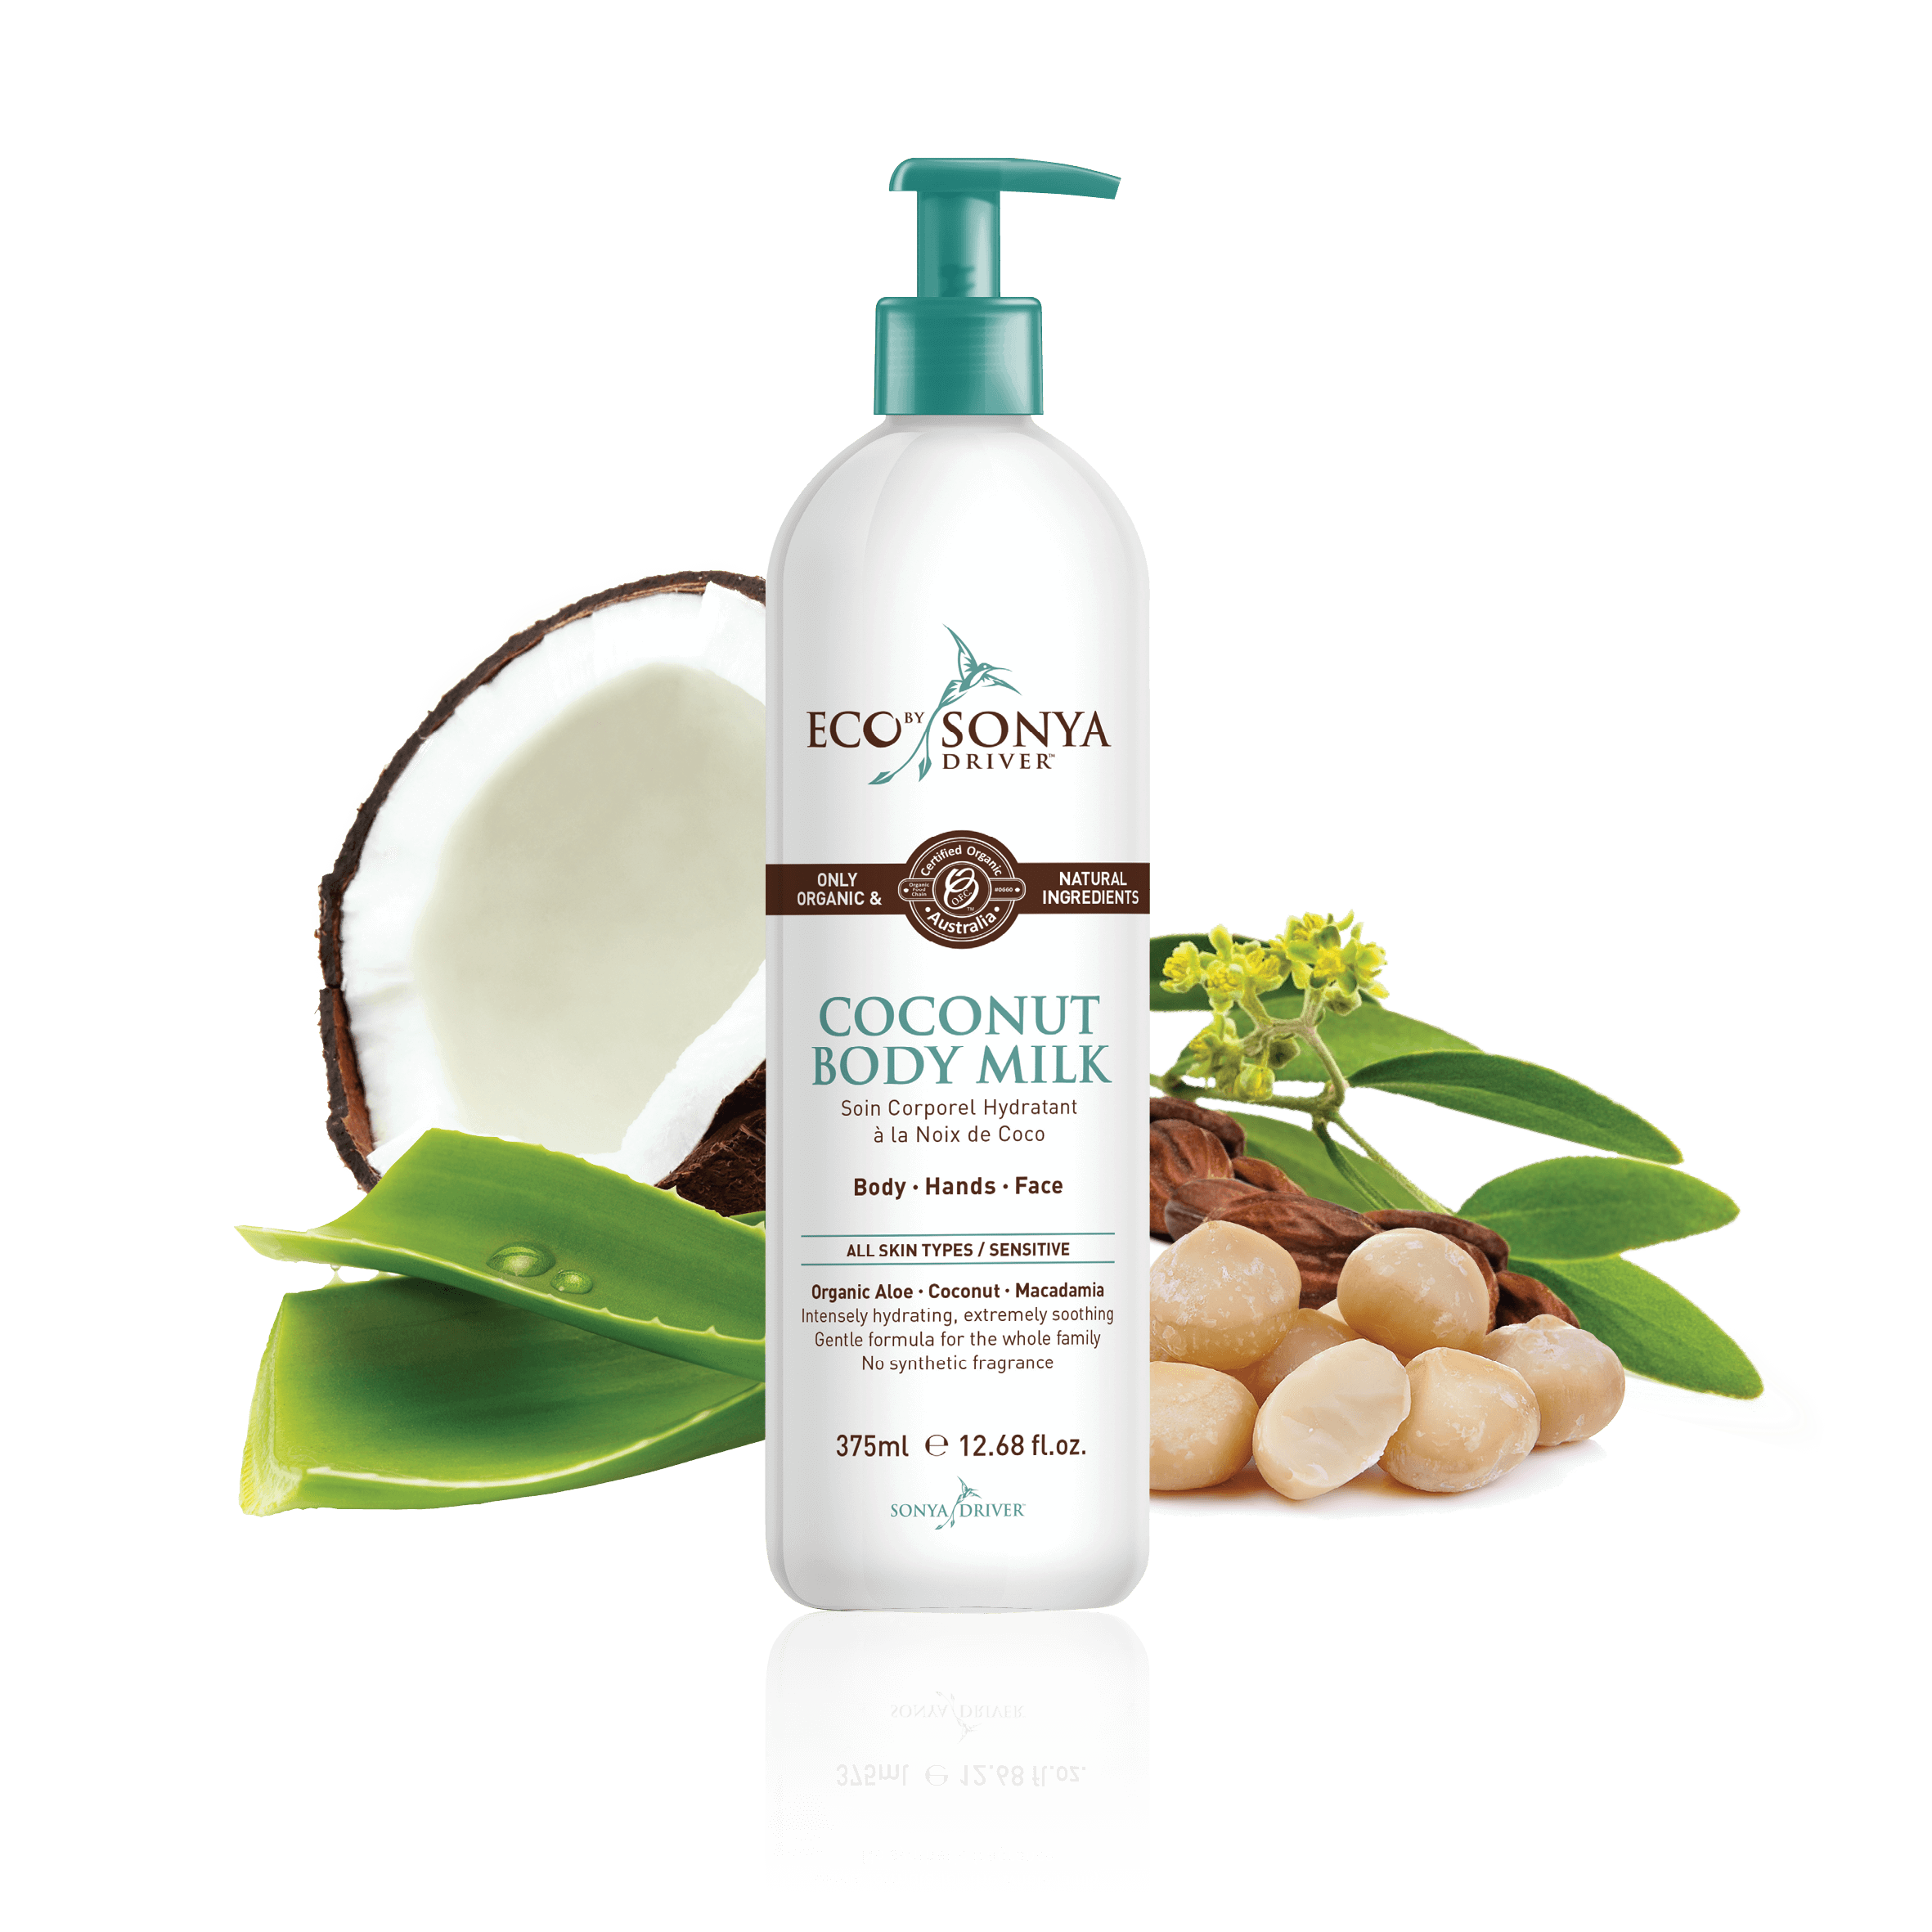 coconut body milk - Coconut Body Milk is a rich organic body lotion perfect for body, hands and face.Our Coconut Body Milk provides instant relief to dehydrated skin and promotes the appearance of smooth, healthy and younger looking skin. Certified organic aloe vera soothes the skin, while a luxurious blend of coconut, jojoba and macadamia delivers long lasting nourishment and hydration.275ml